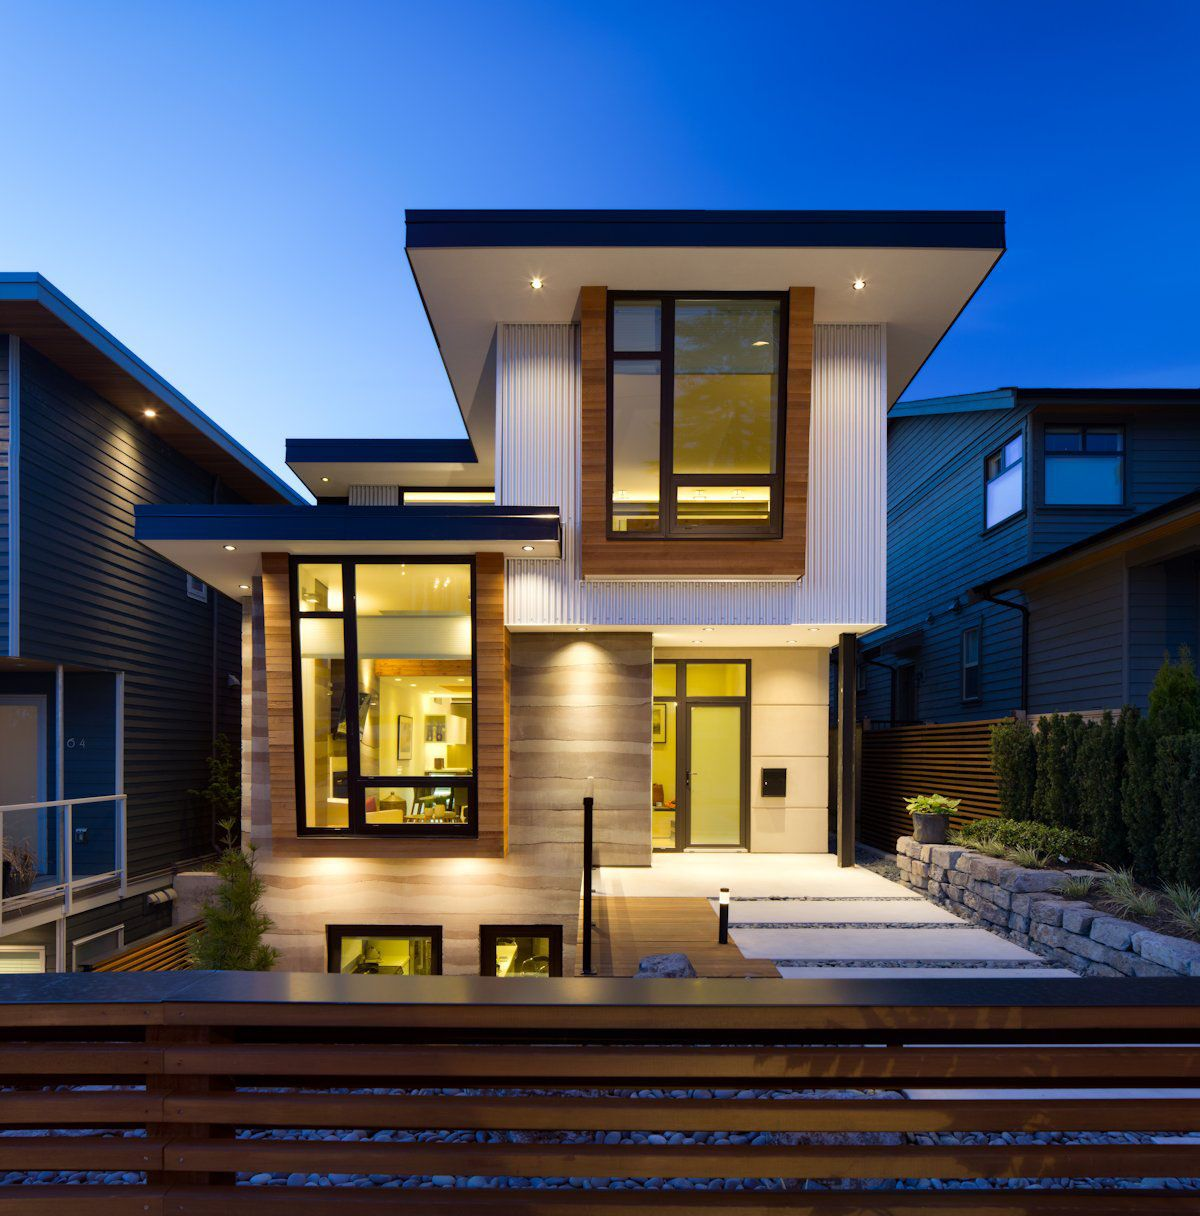 Midori uchi by naikoon contracting and kerschbaumer design for Award winning home designs 2012